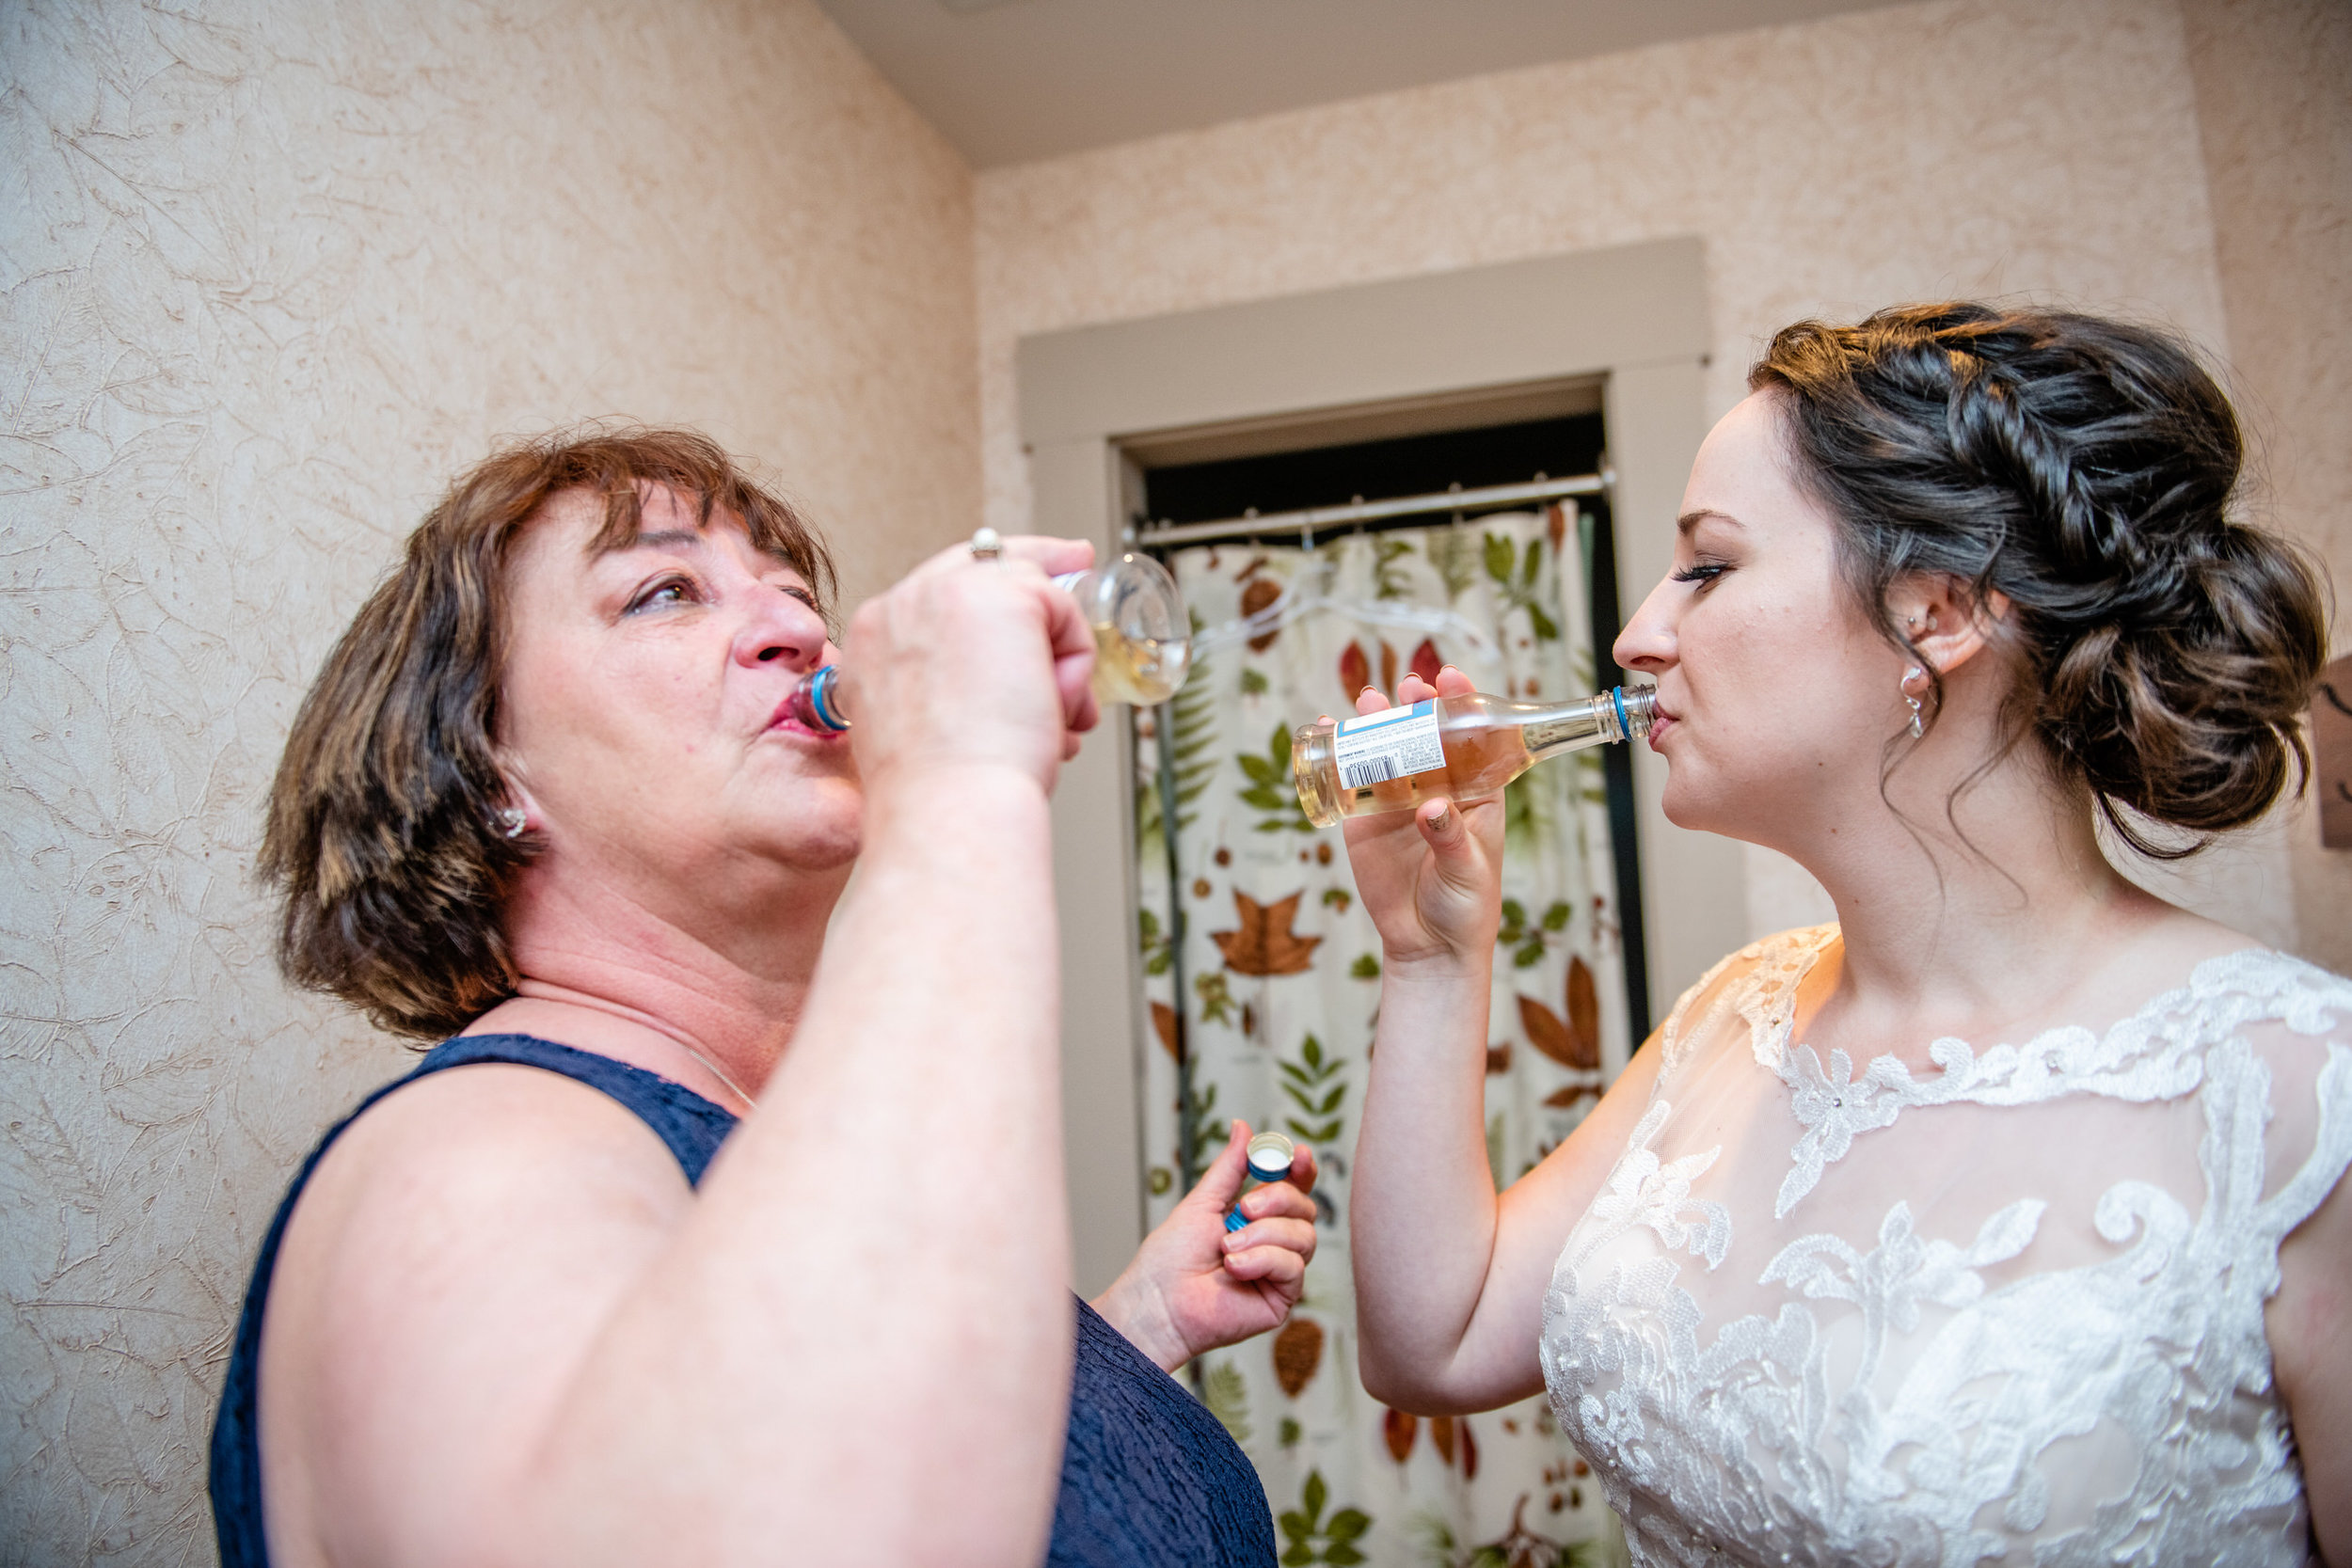 ThorpewoodWedding-Eileen&Chris-GettingReady-3297.jpg